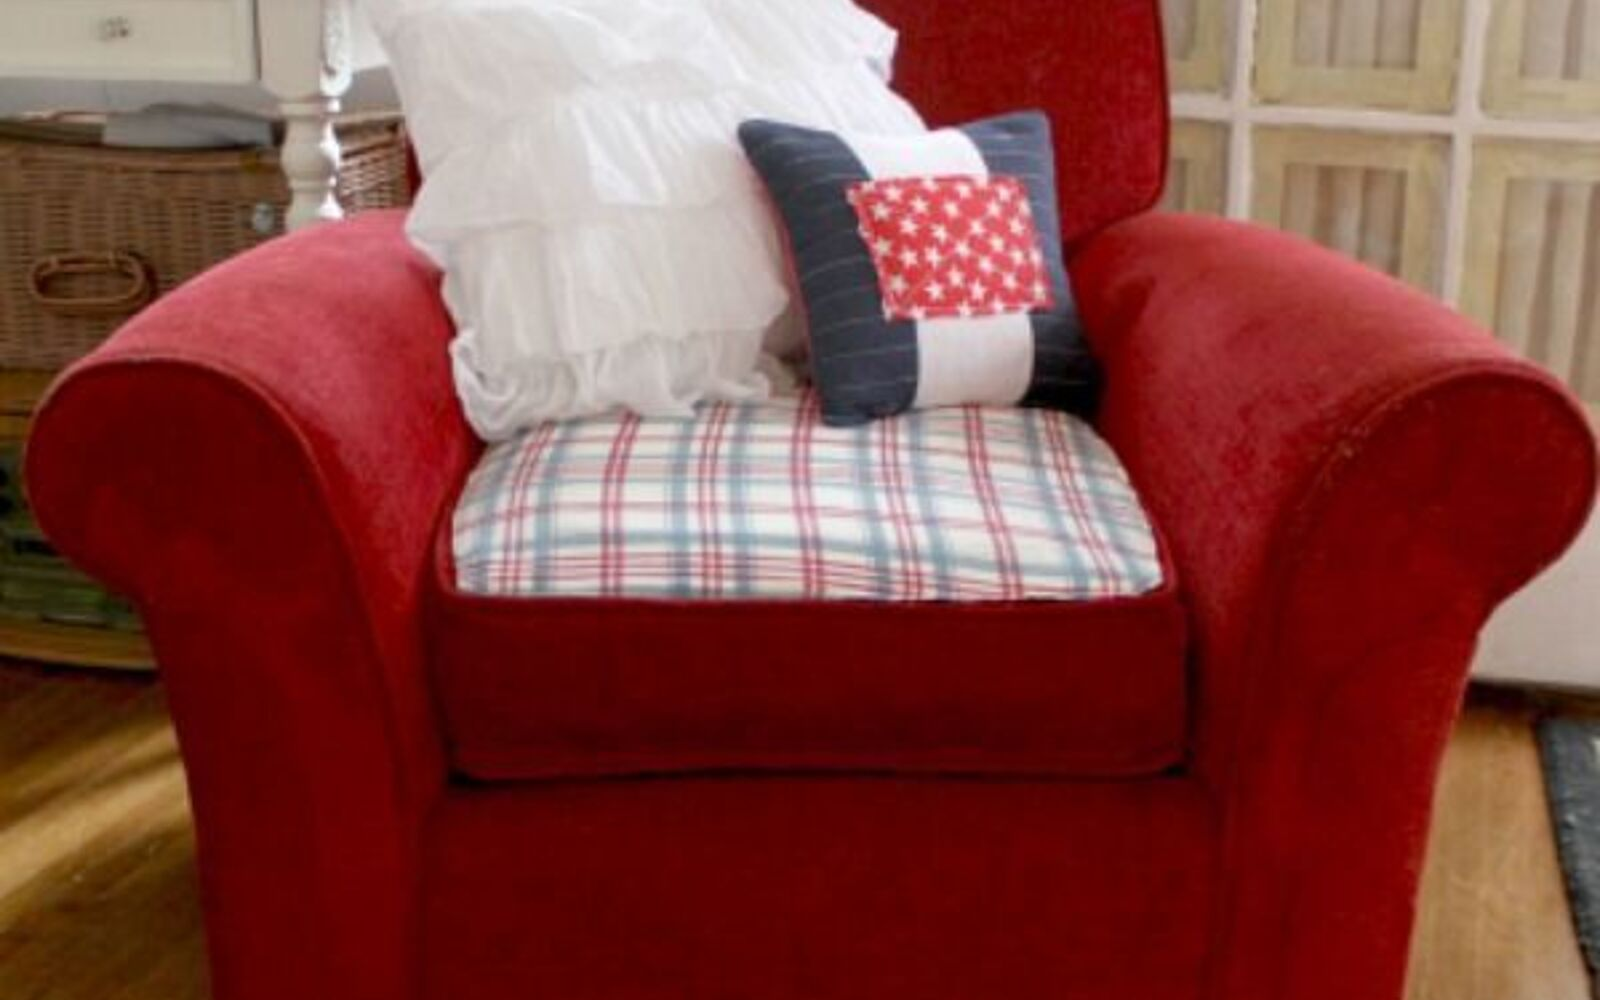 s hide your couch s wear and tear with these great ideas, Add patches to ribbed cushions and corners